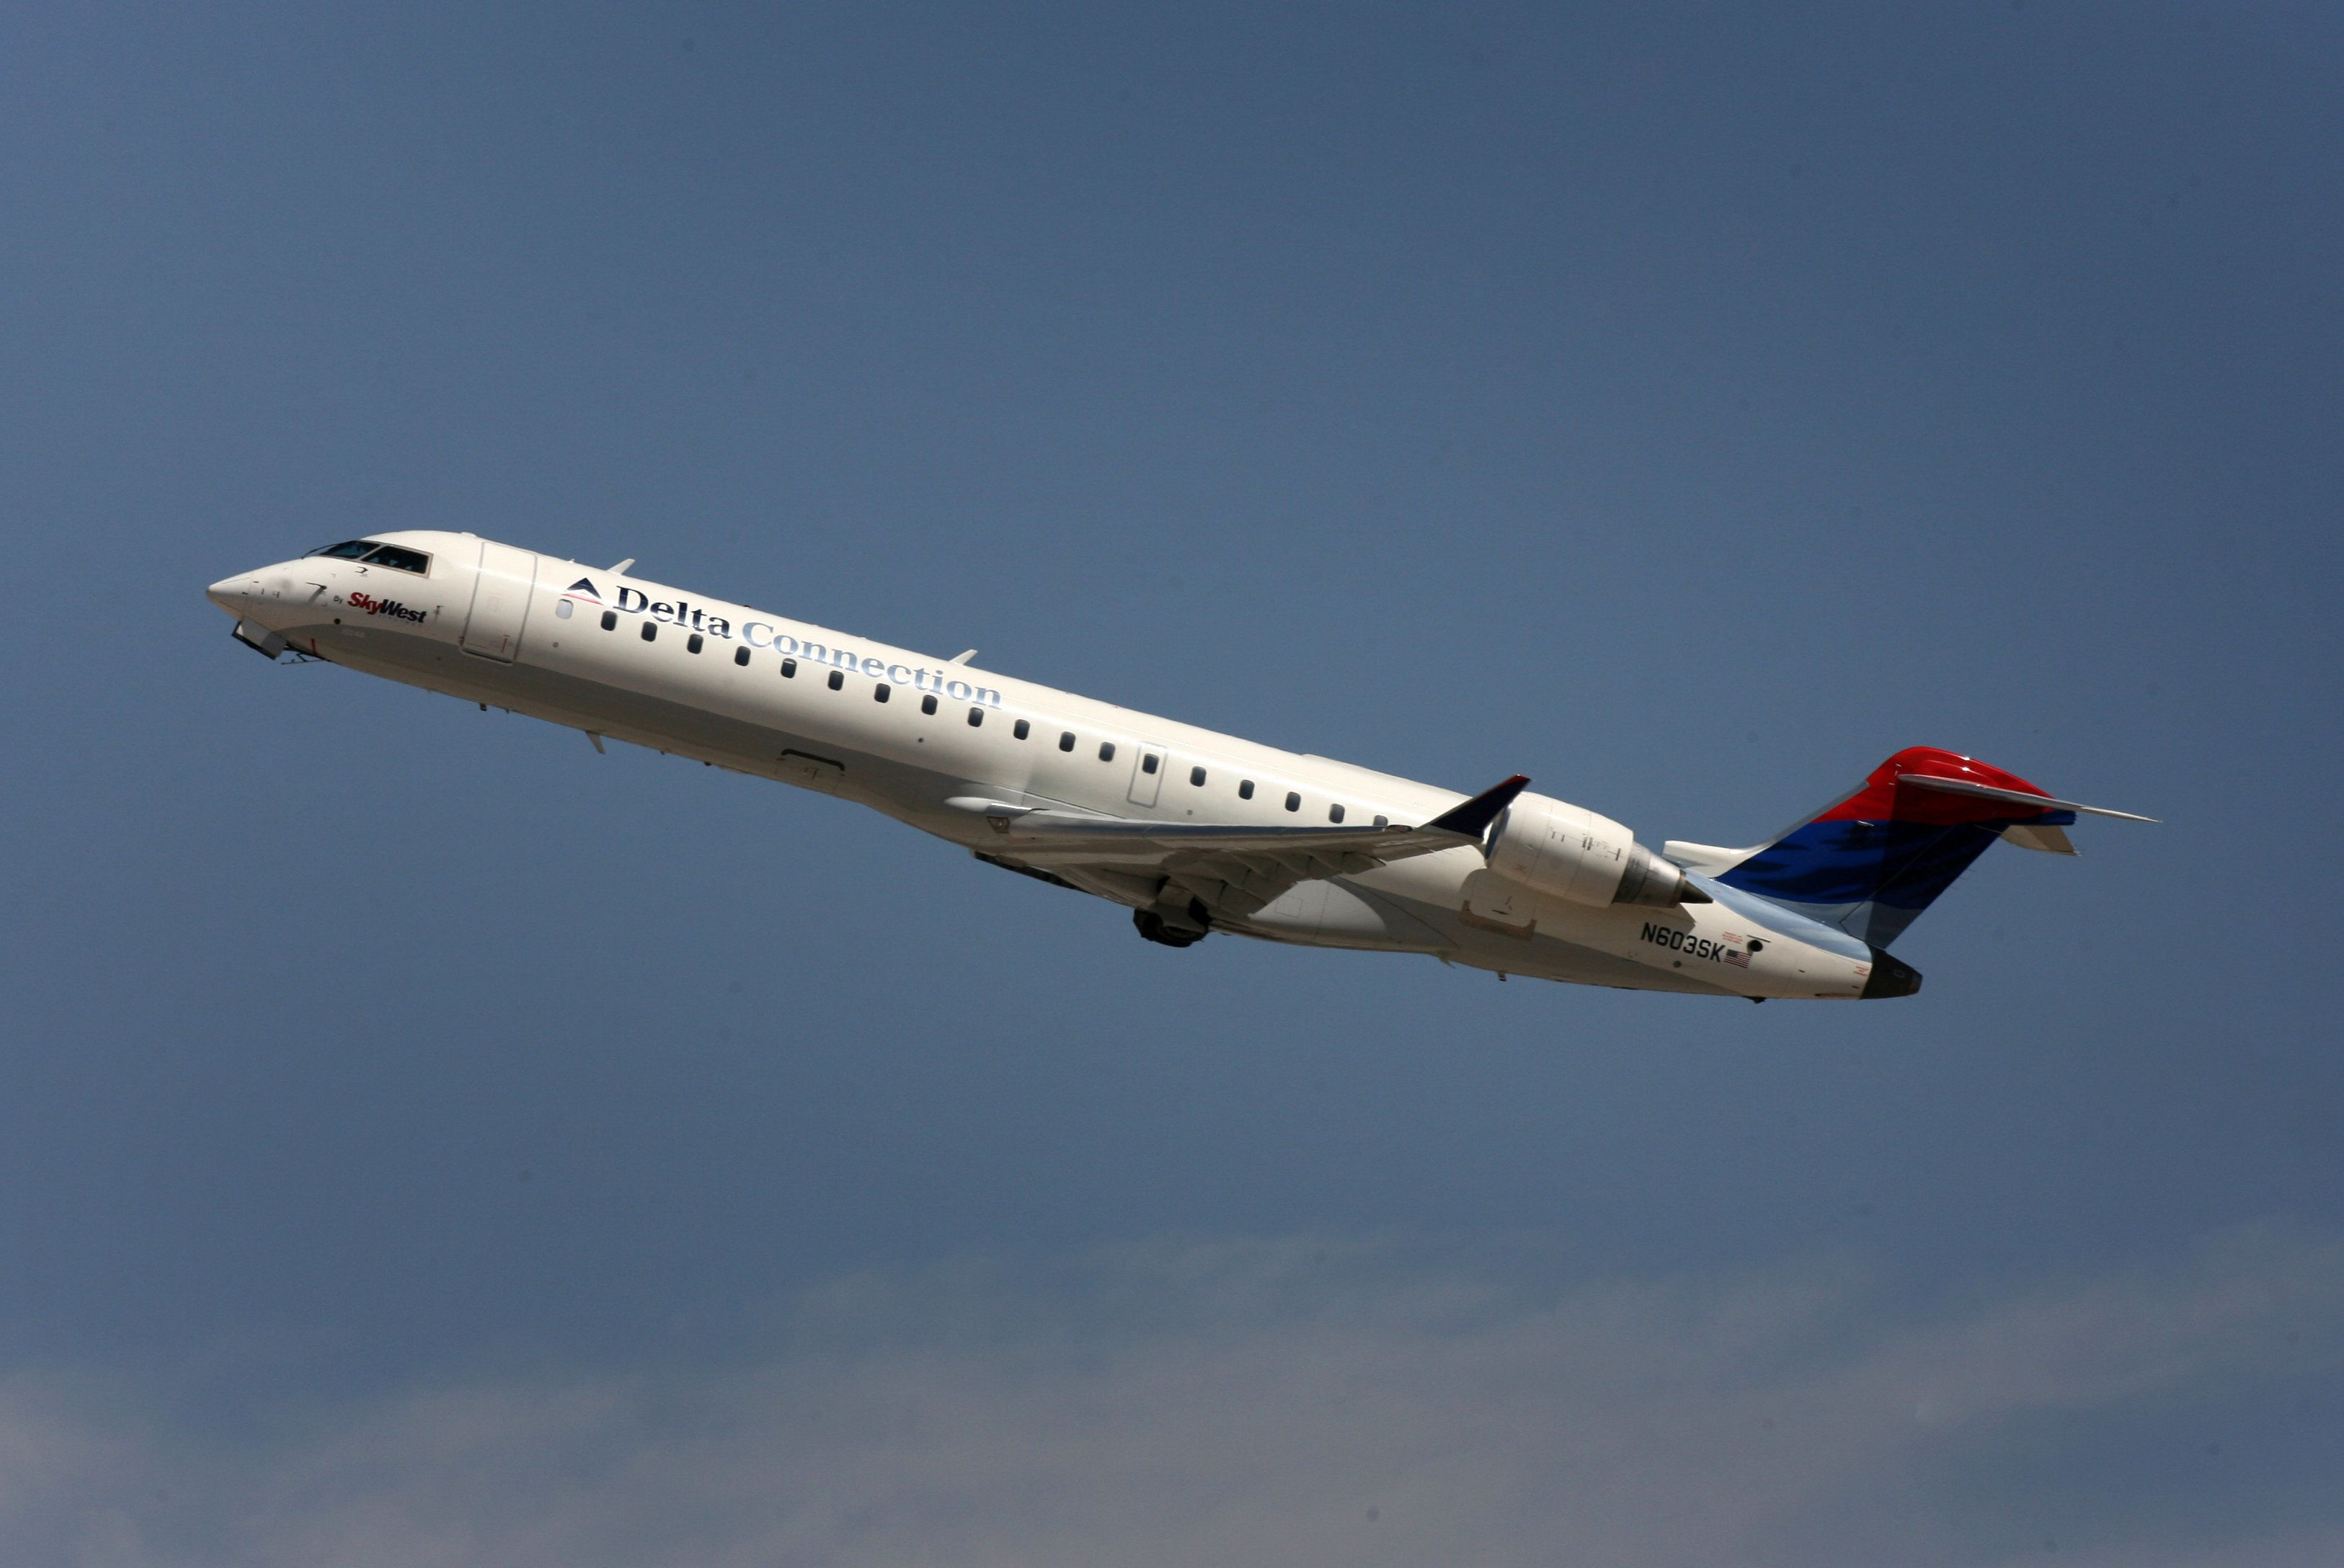 Delta Under Fire After Pilot Appears To Hit